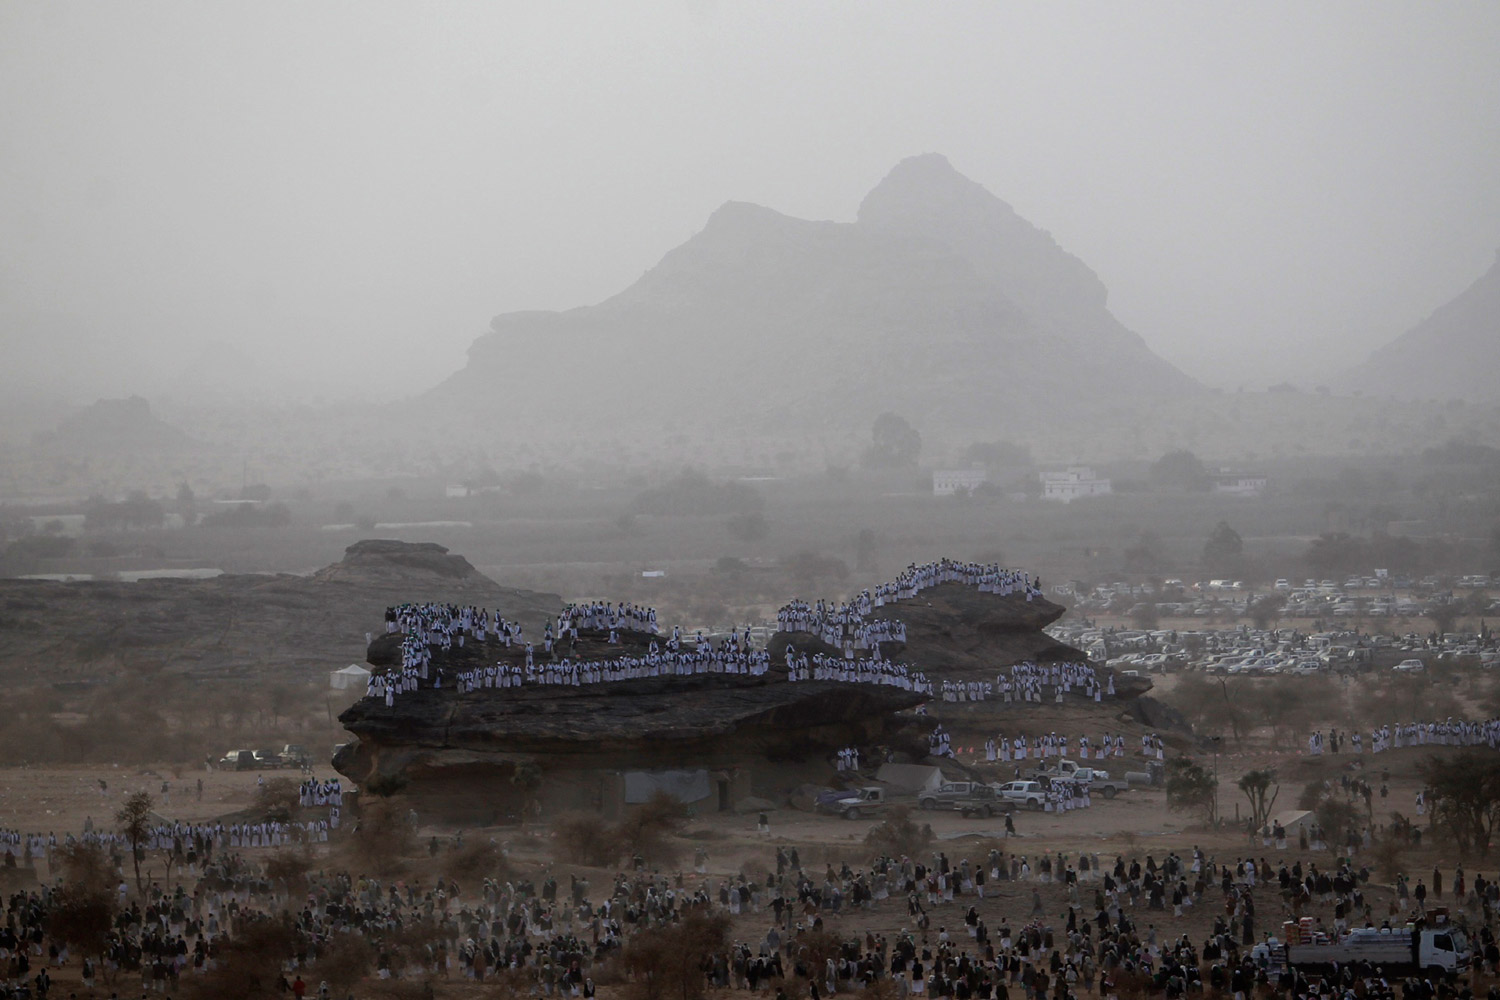 February 4, 2012. Followers of Yemen's Shi'ite sect stand on a hill as others leave a ceremony to mark the birth anniversary of the Prophet Mohammad in Dhahian of the northwestern Yemeni province of Saada.